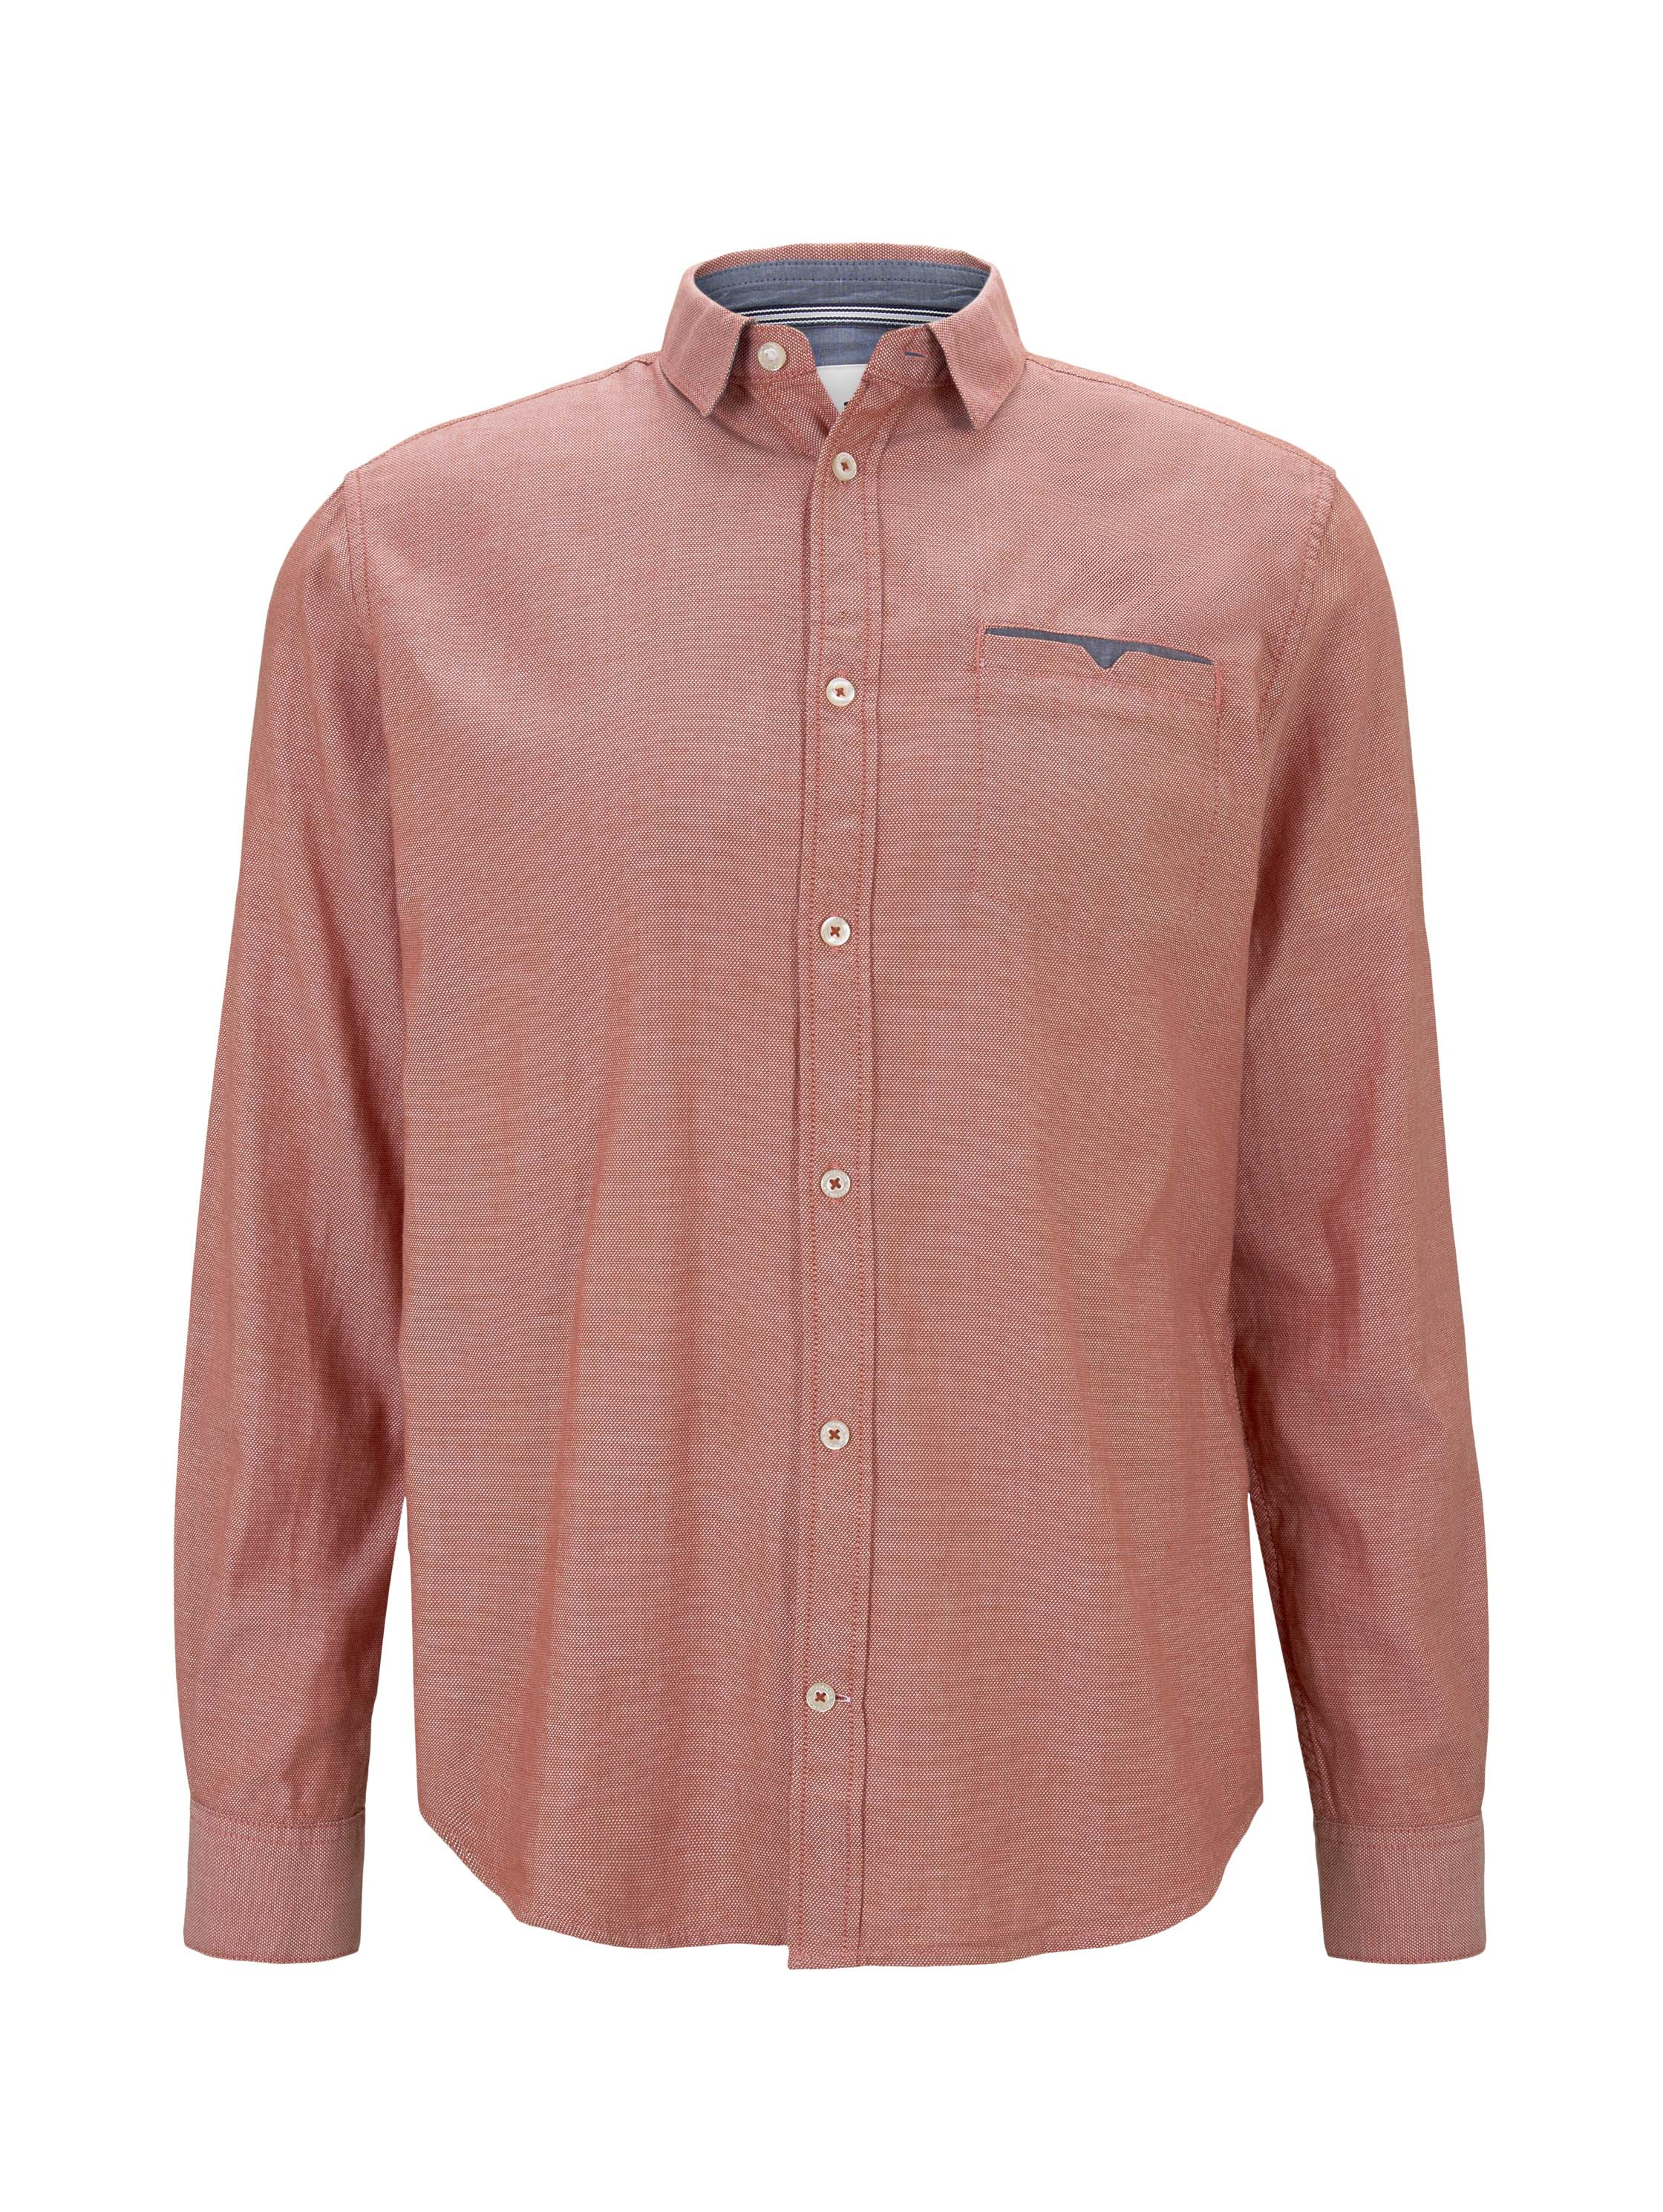 regular deco shirt with rollup, orange white structure